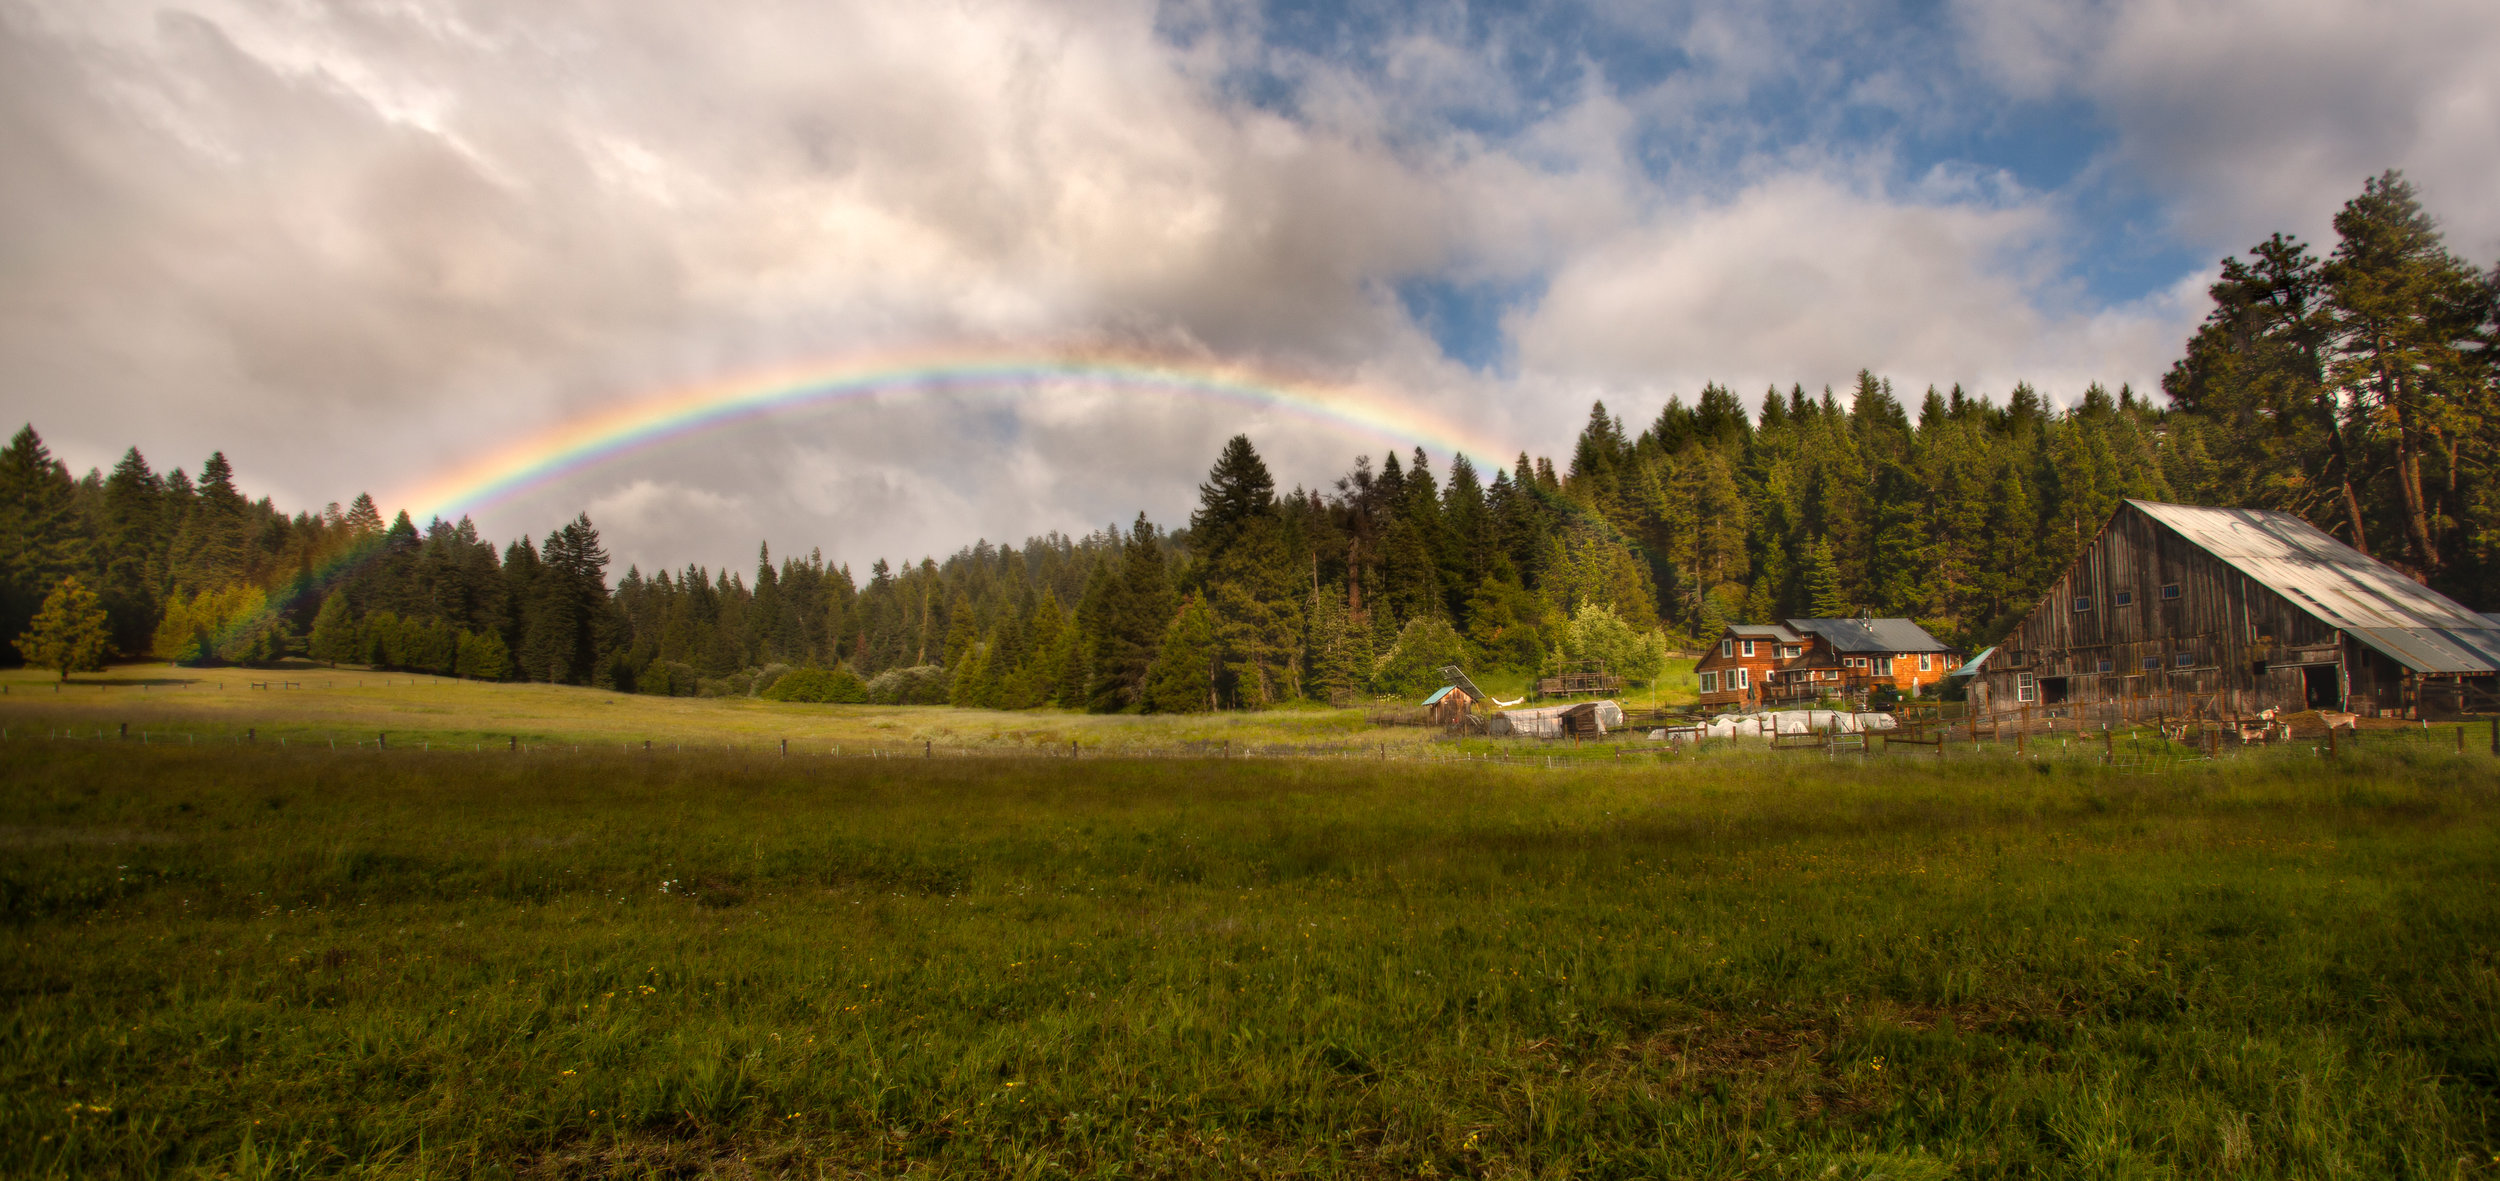 Willow-Witt Ranch Rainbow.jpg